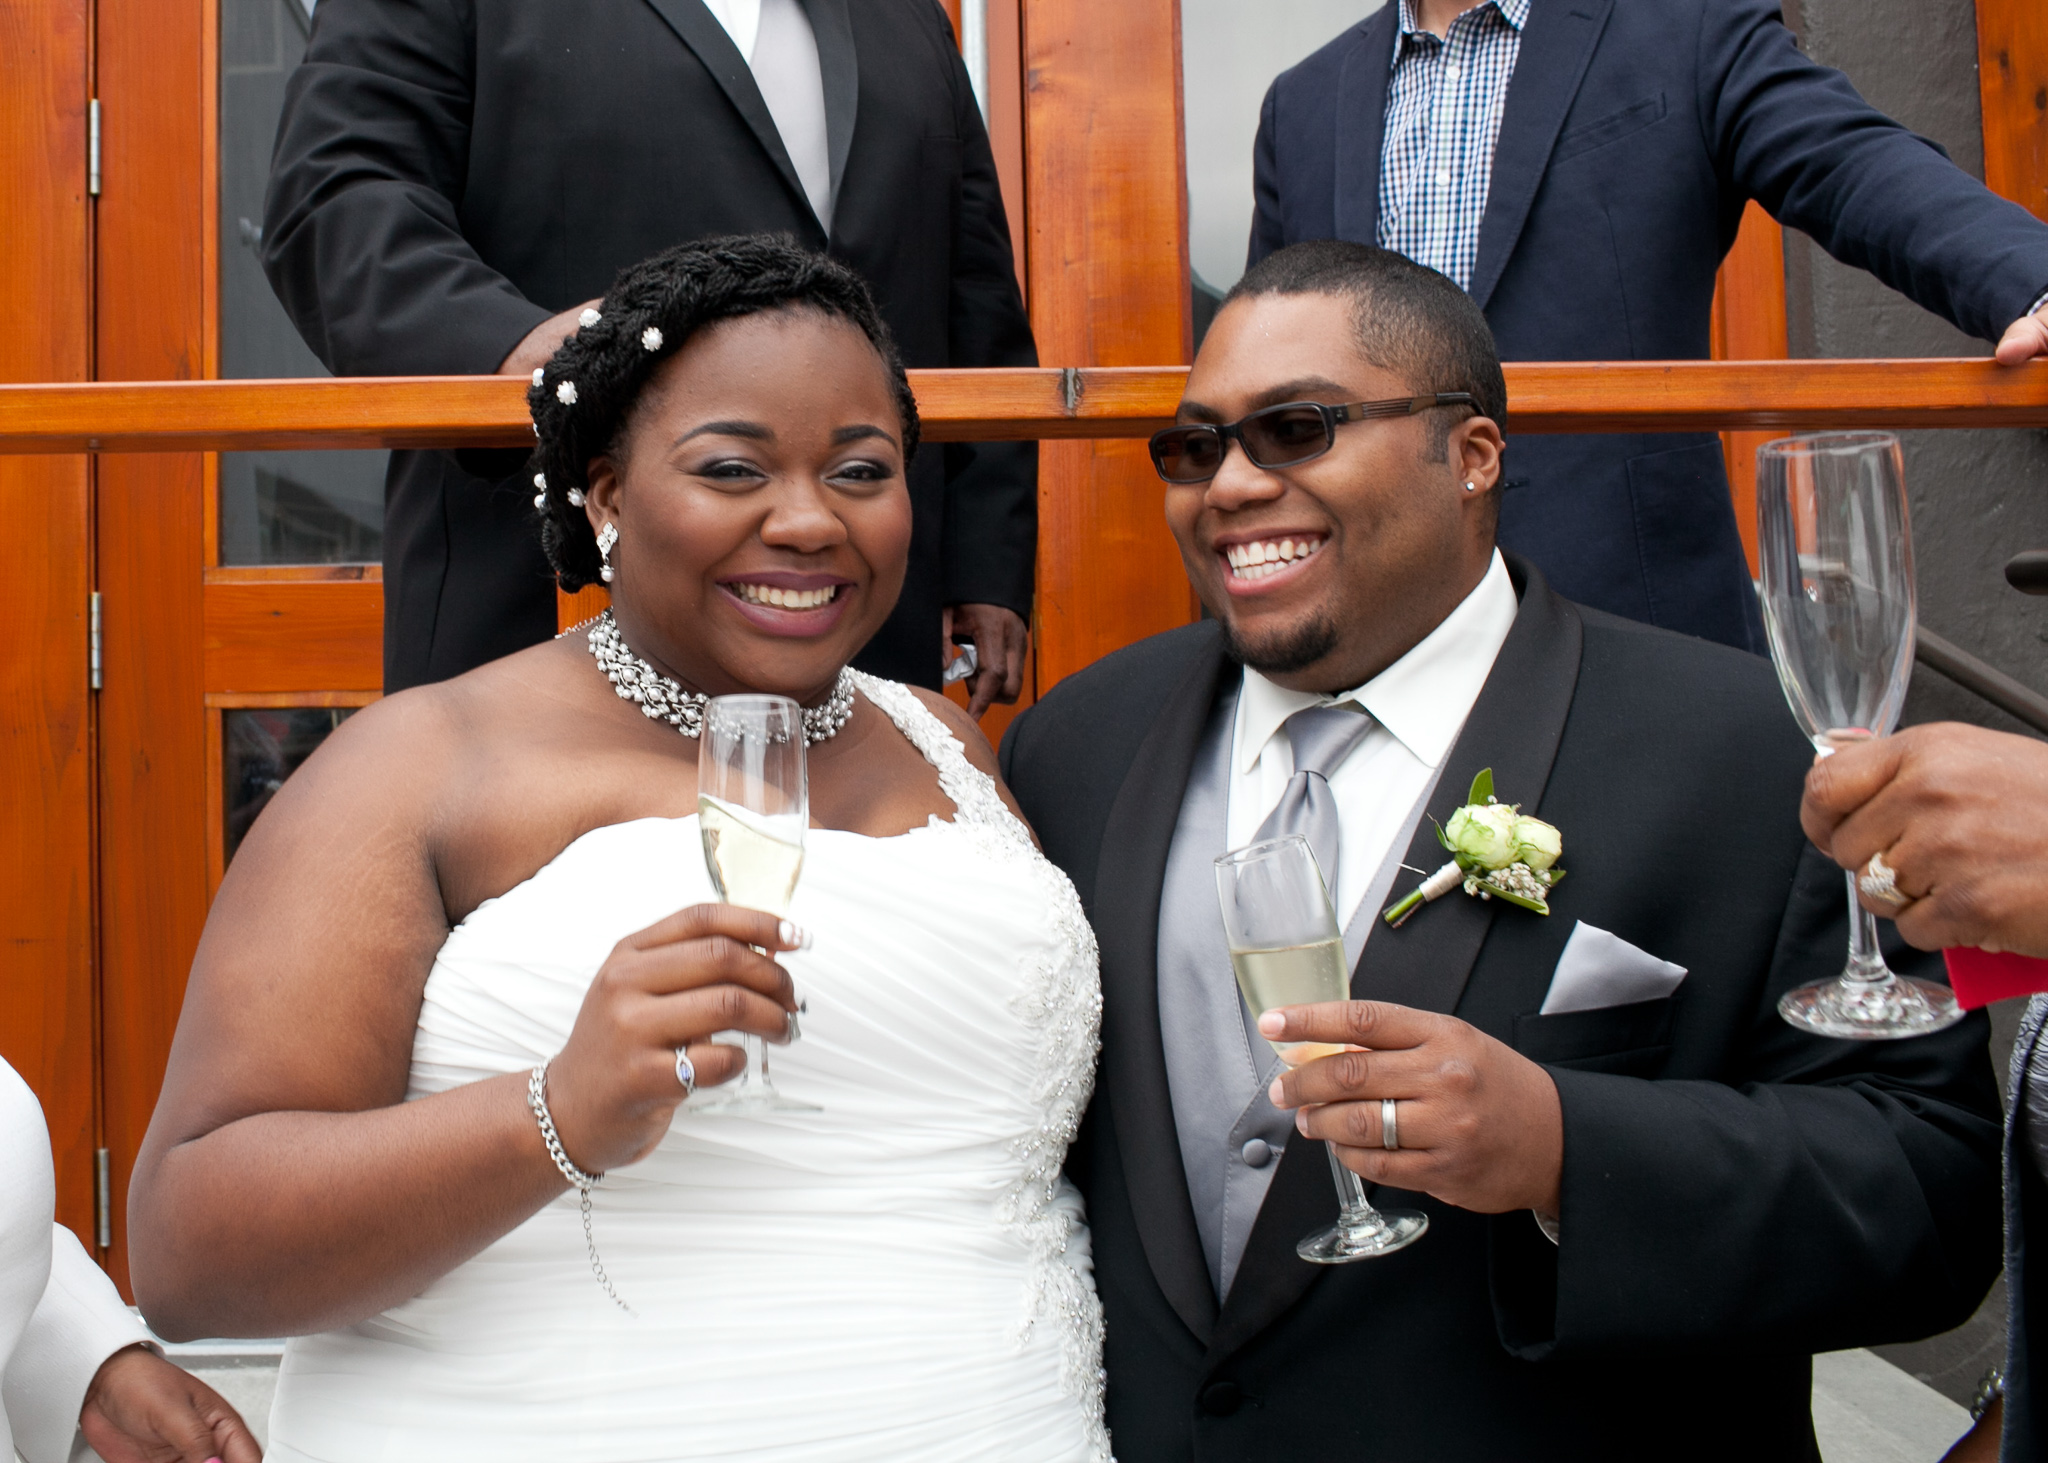 Wedding_Day_Moments_To_Do_List_0307D&W.jpg